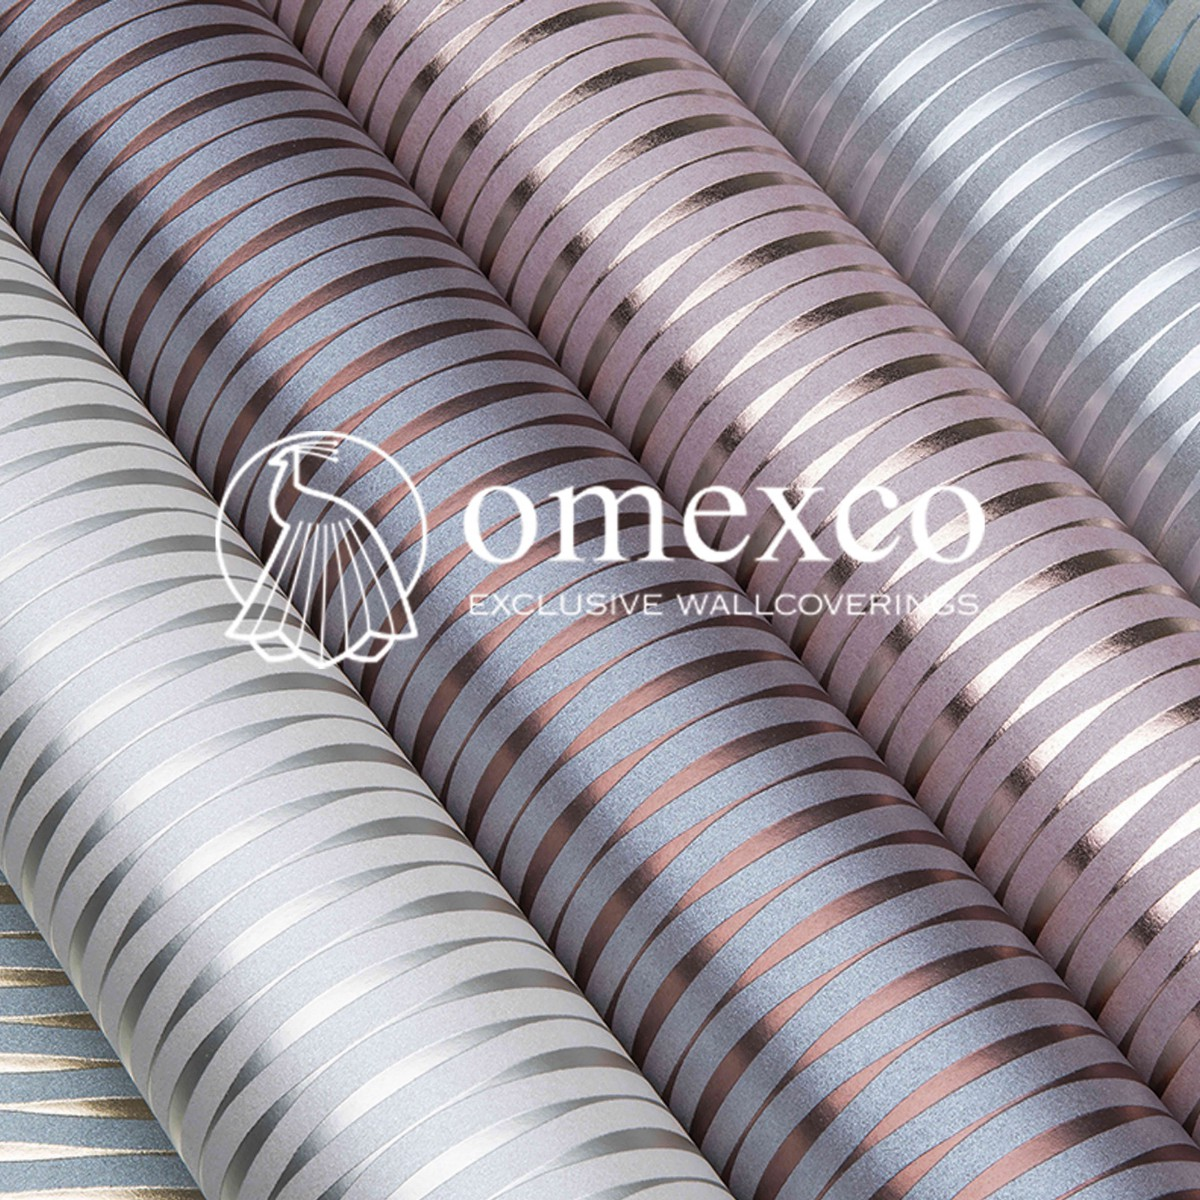 omexco-couverture-1-1